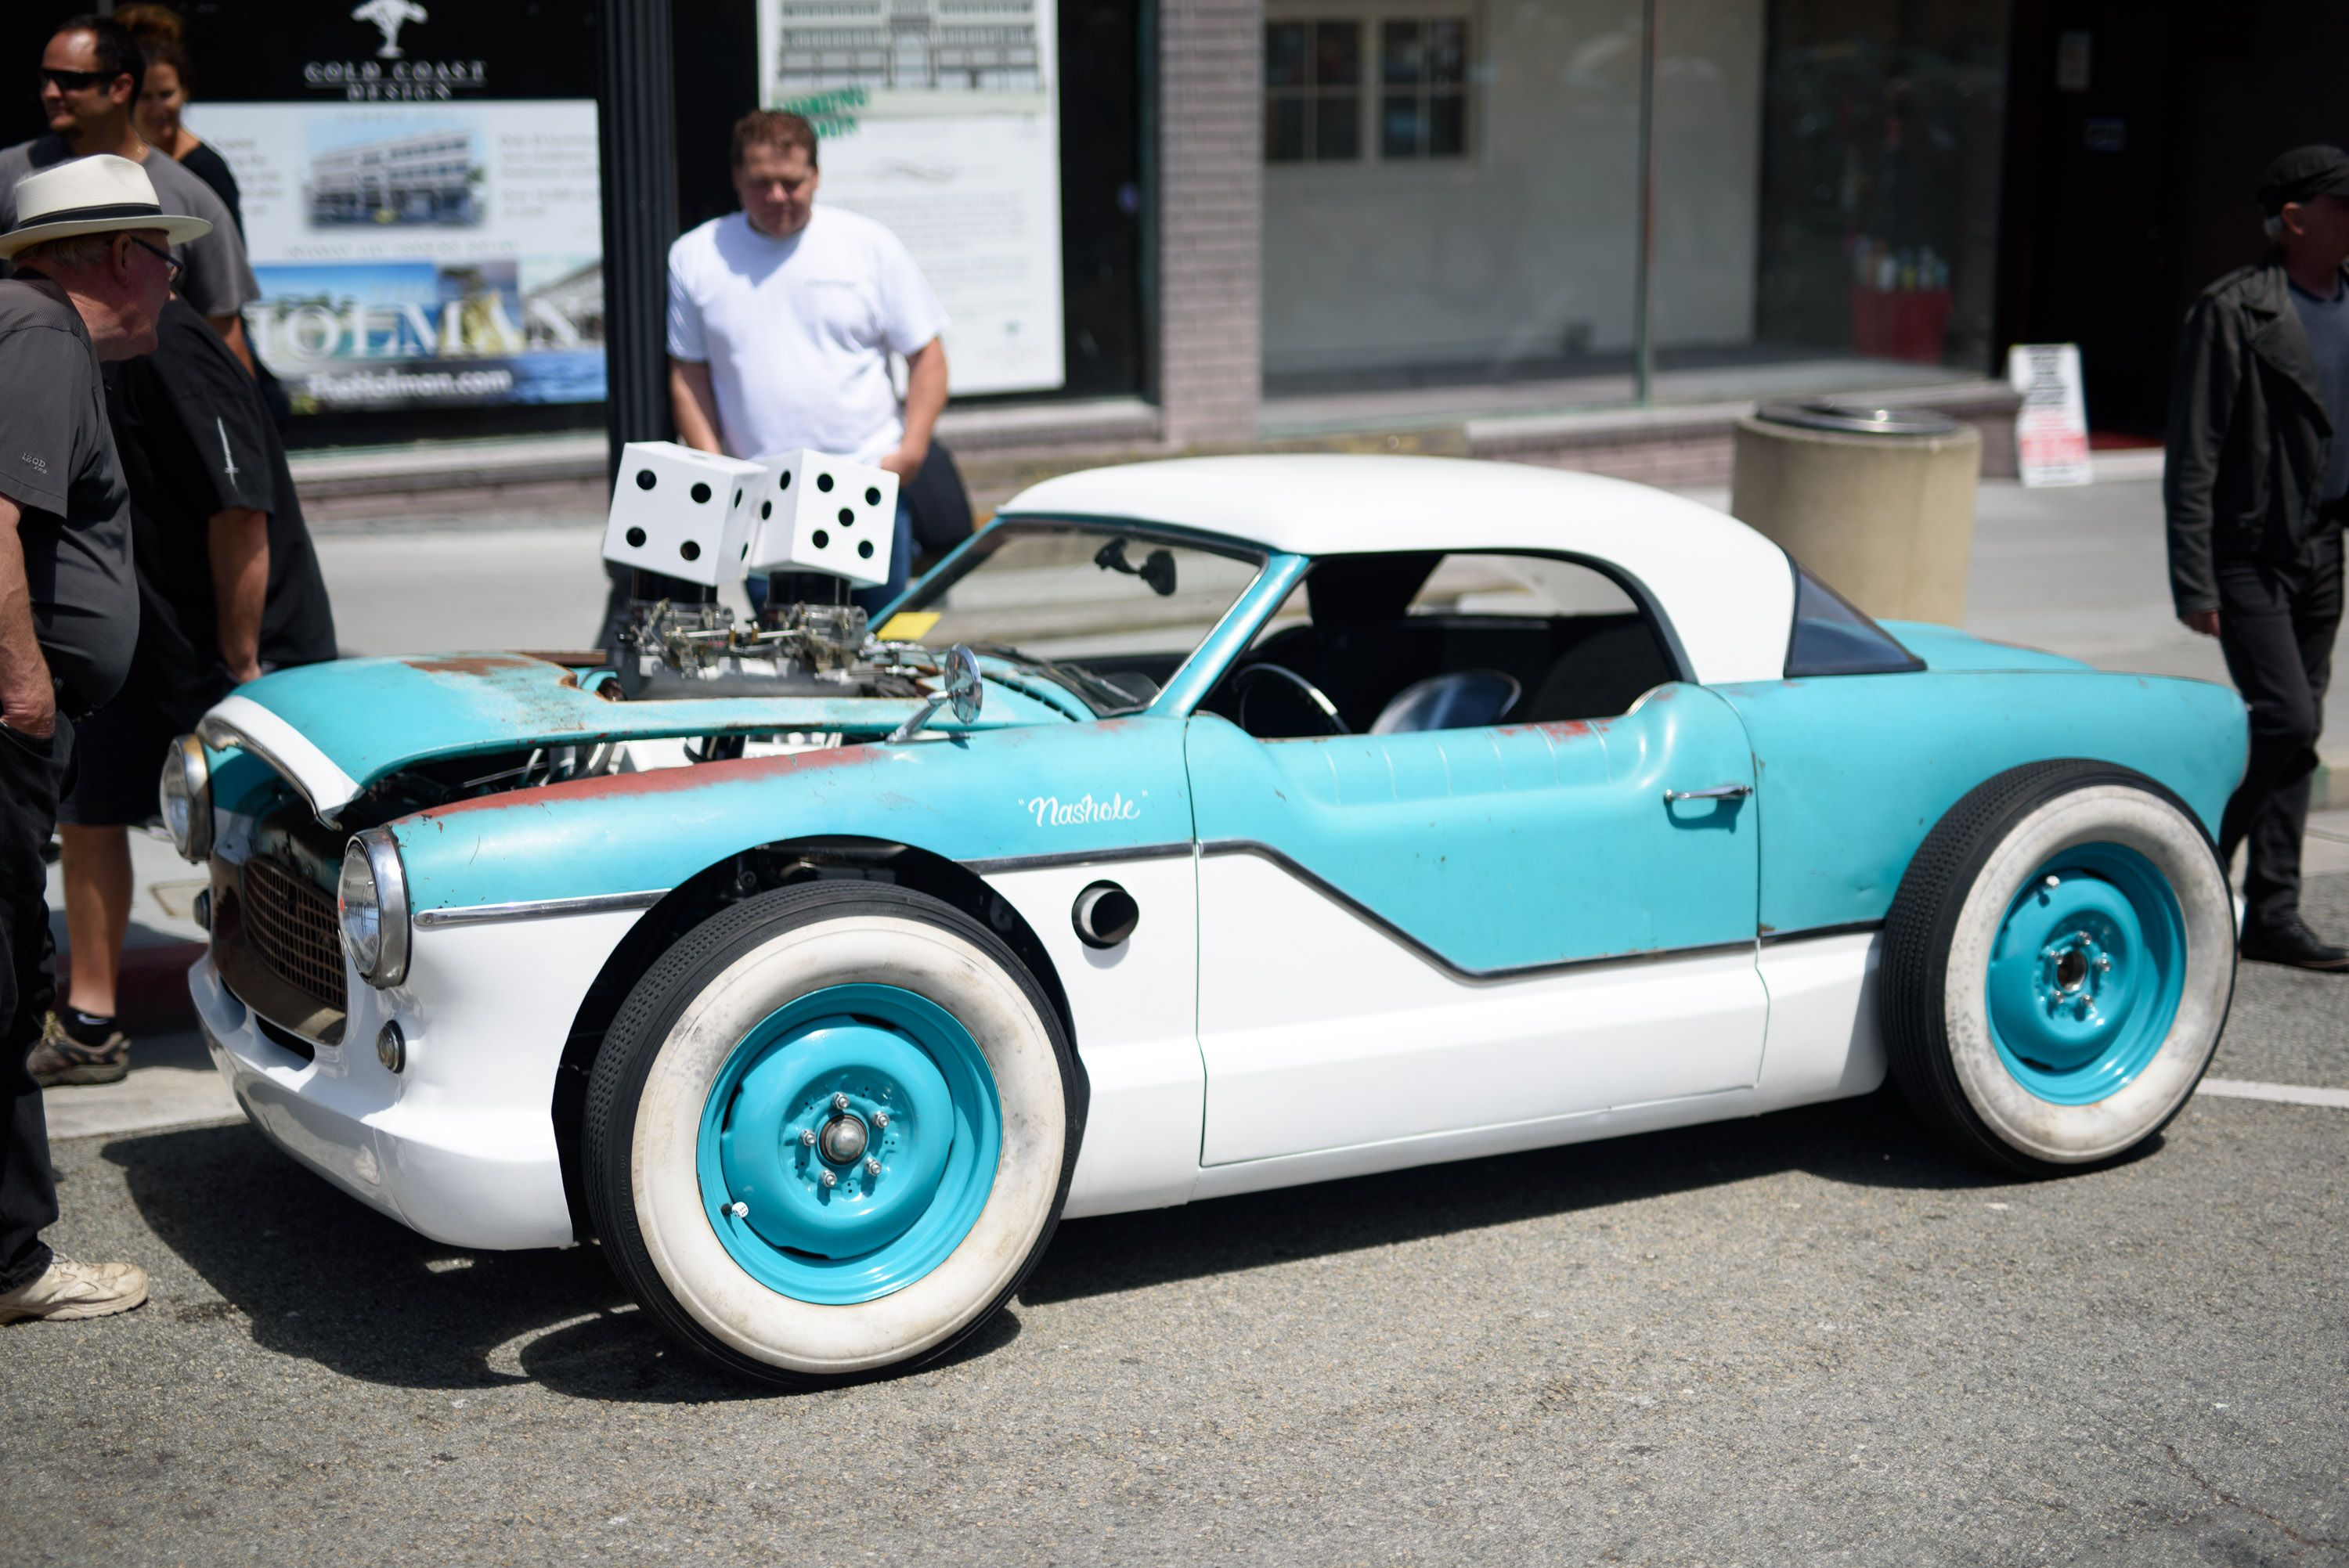 The Little Car Show is full of Quirky Cars   Classic Cars